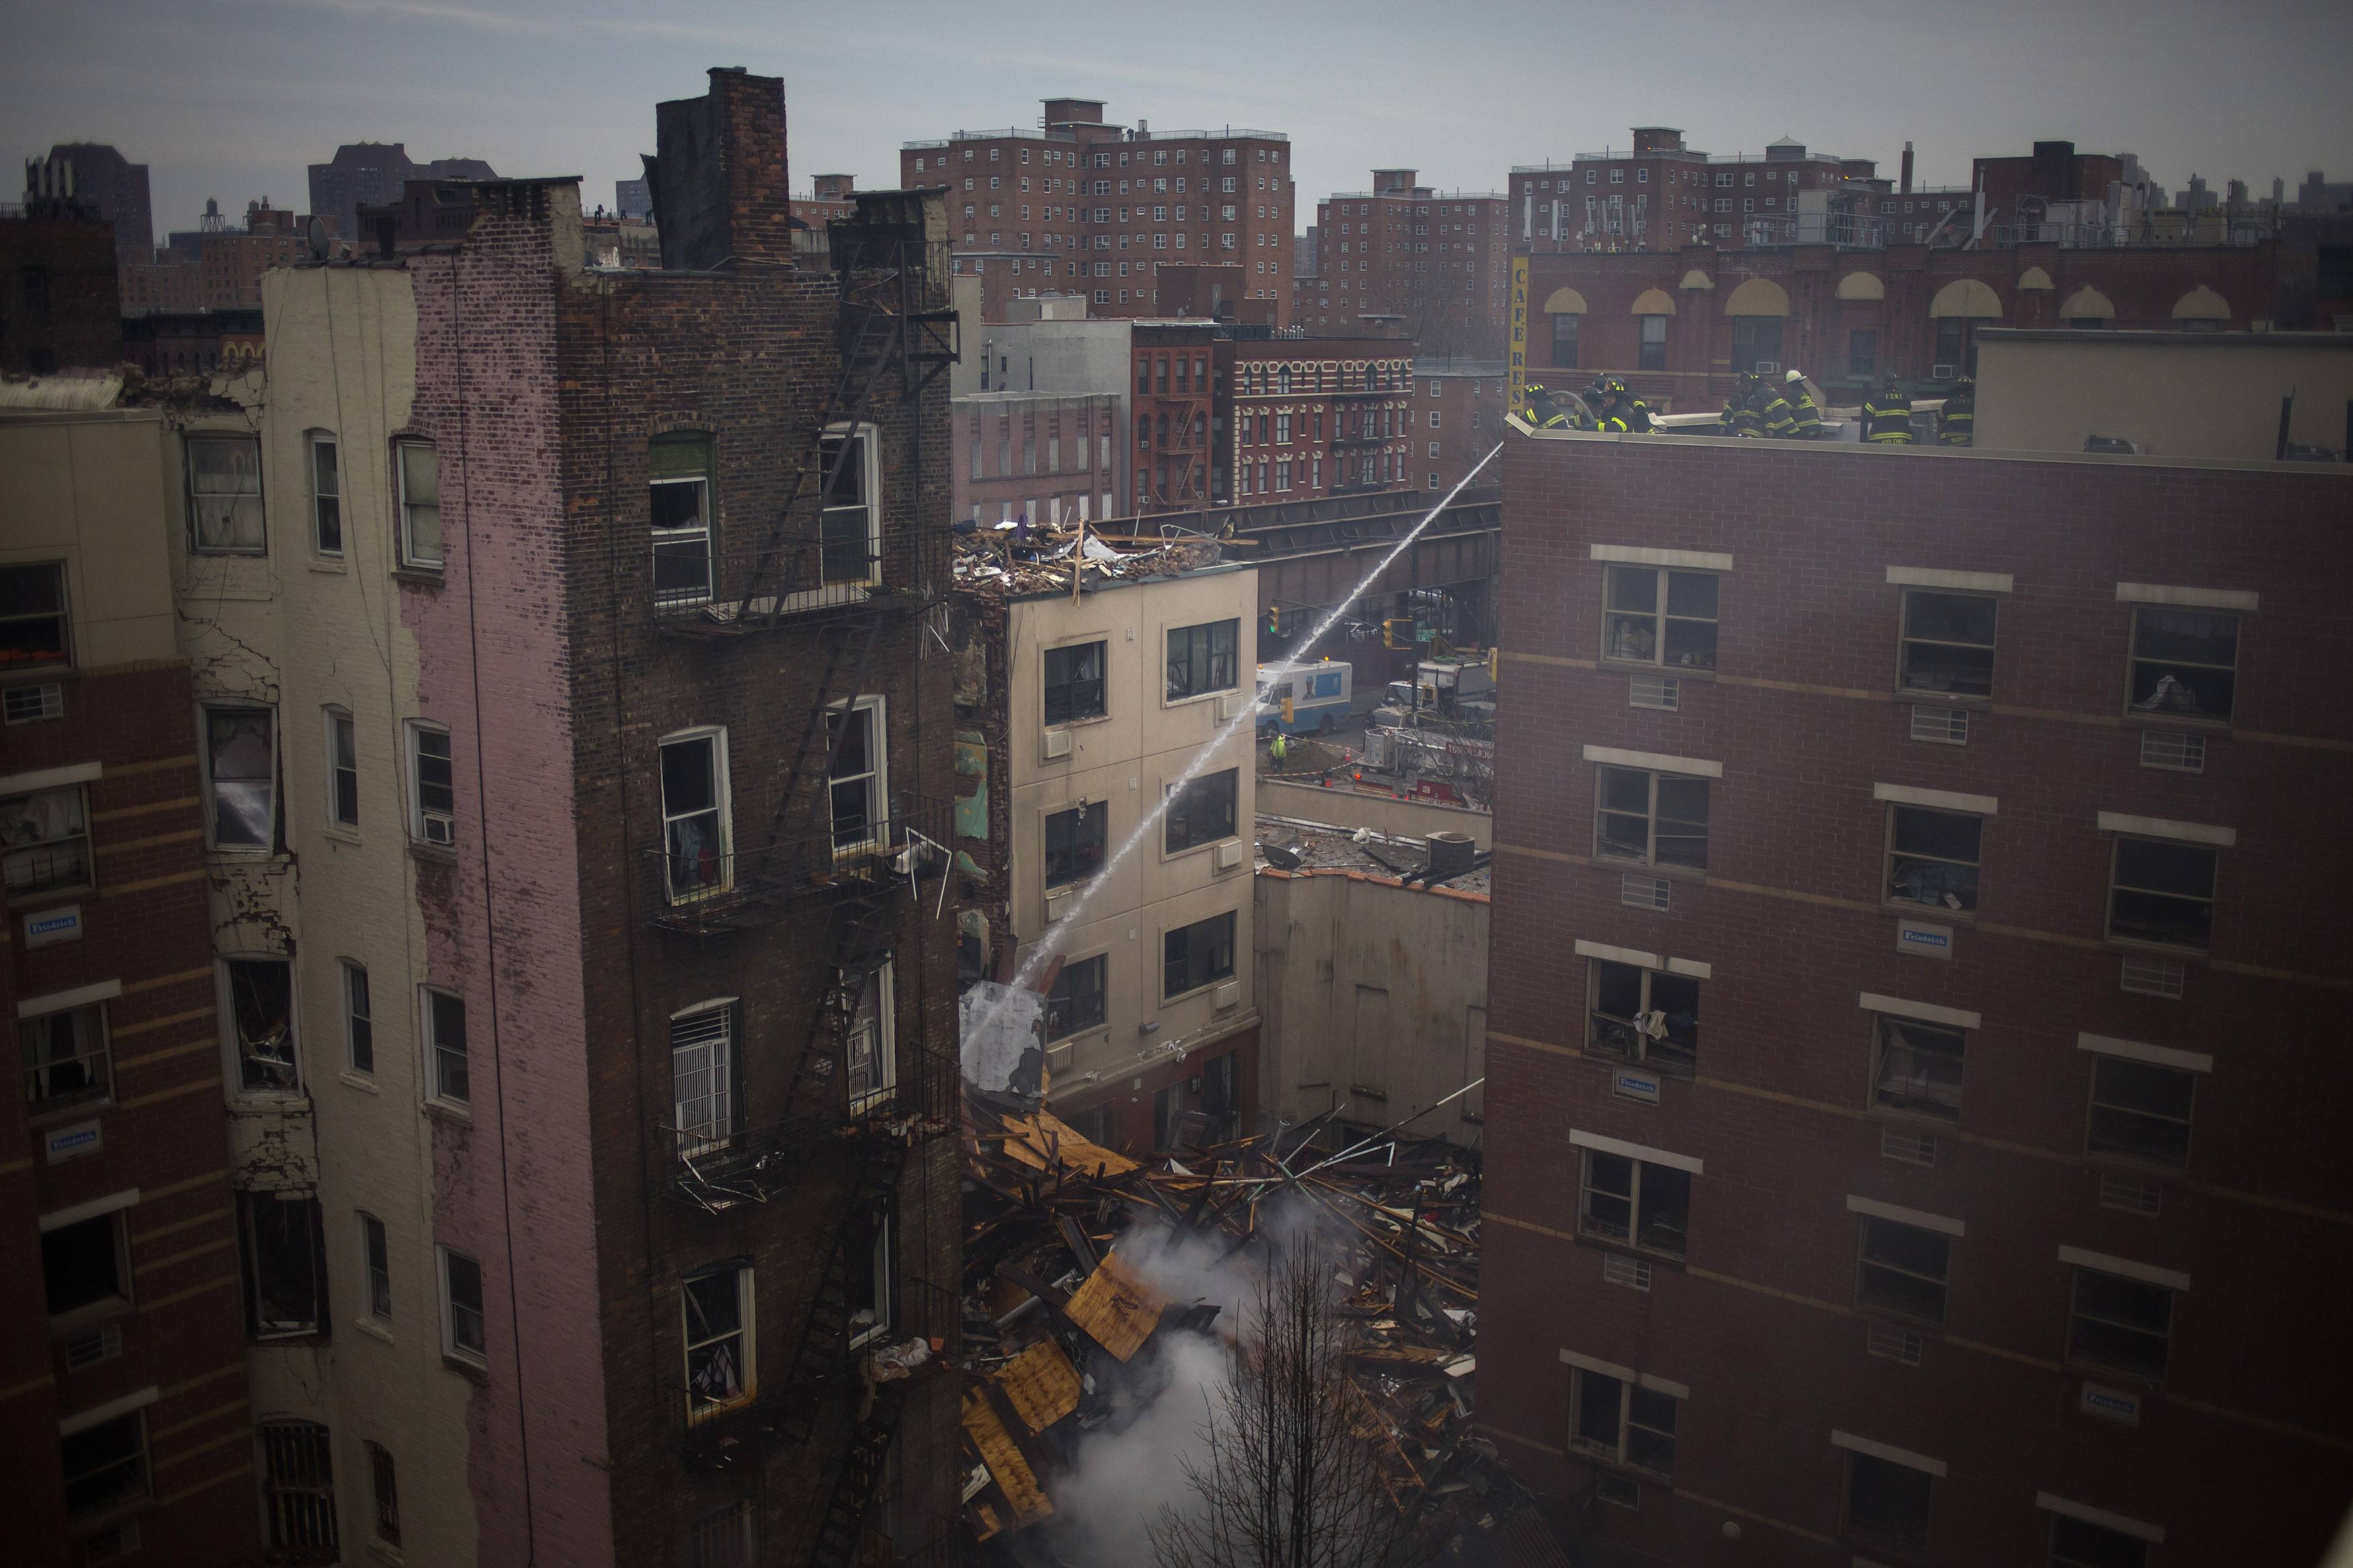 New York City firefighters examine the rubble at an apparent building explosion fire and collapse in Harlem.